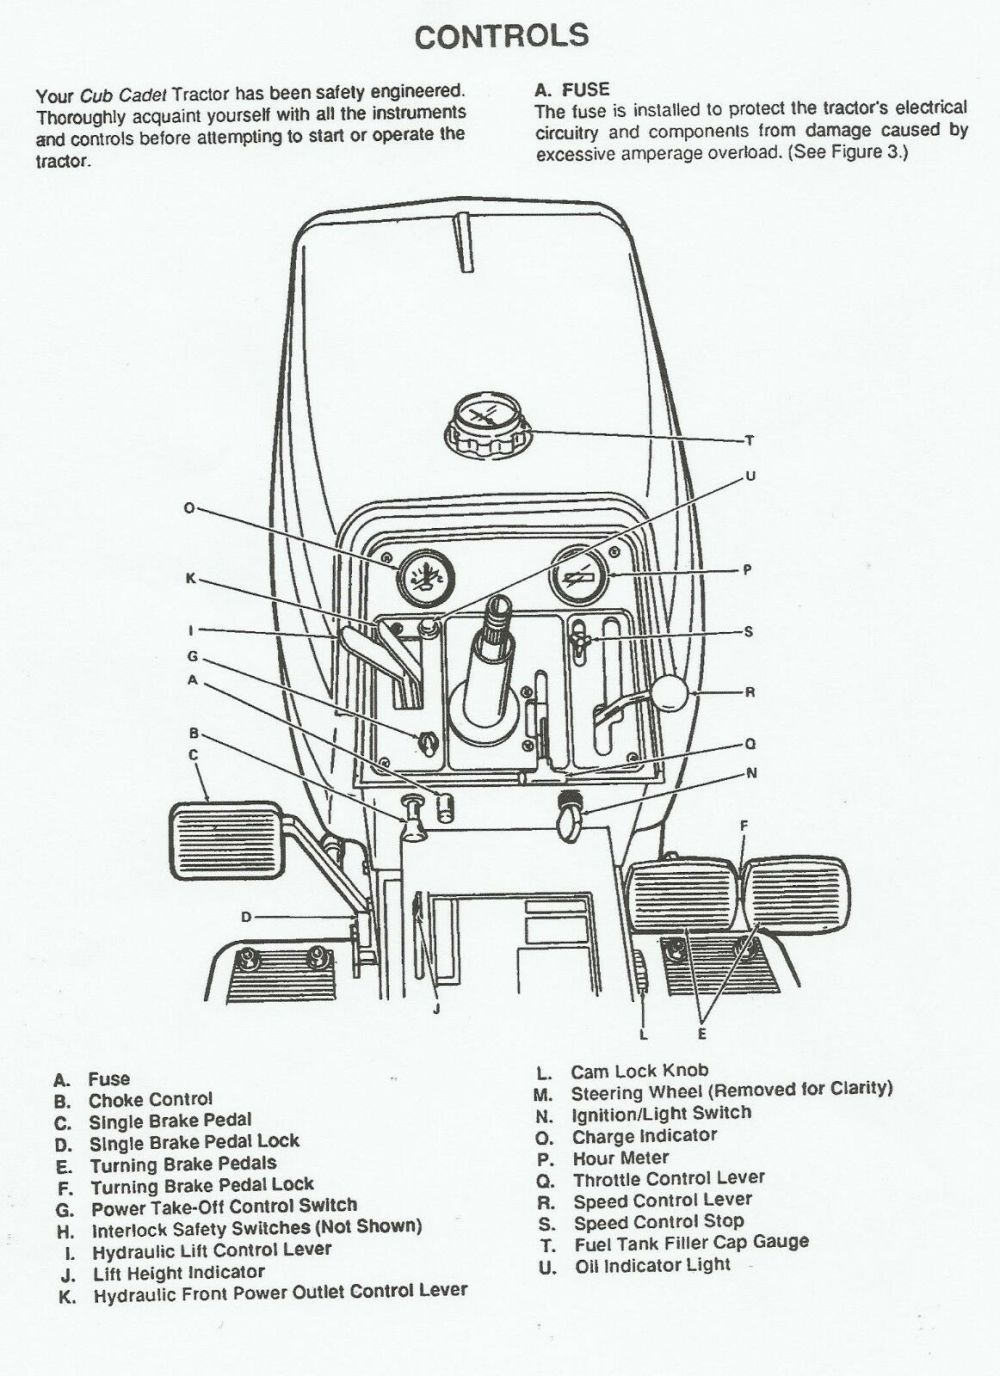 medium resolution of 2072 cub cadet wiring diagram wiring library 2072 cub cadet wiring diagram